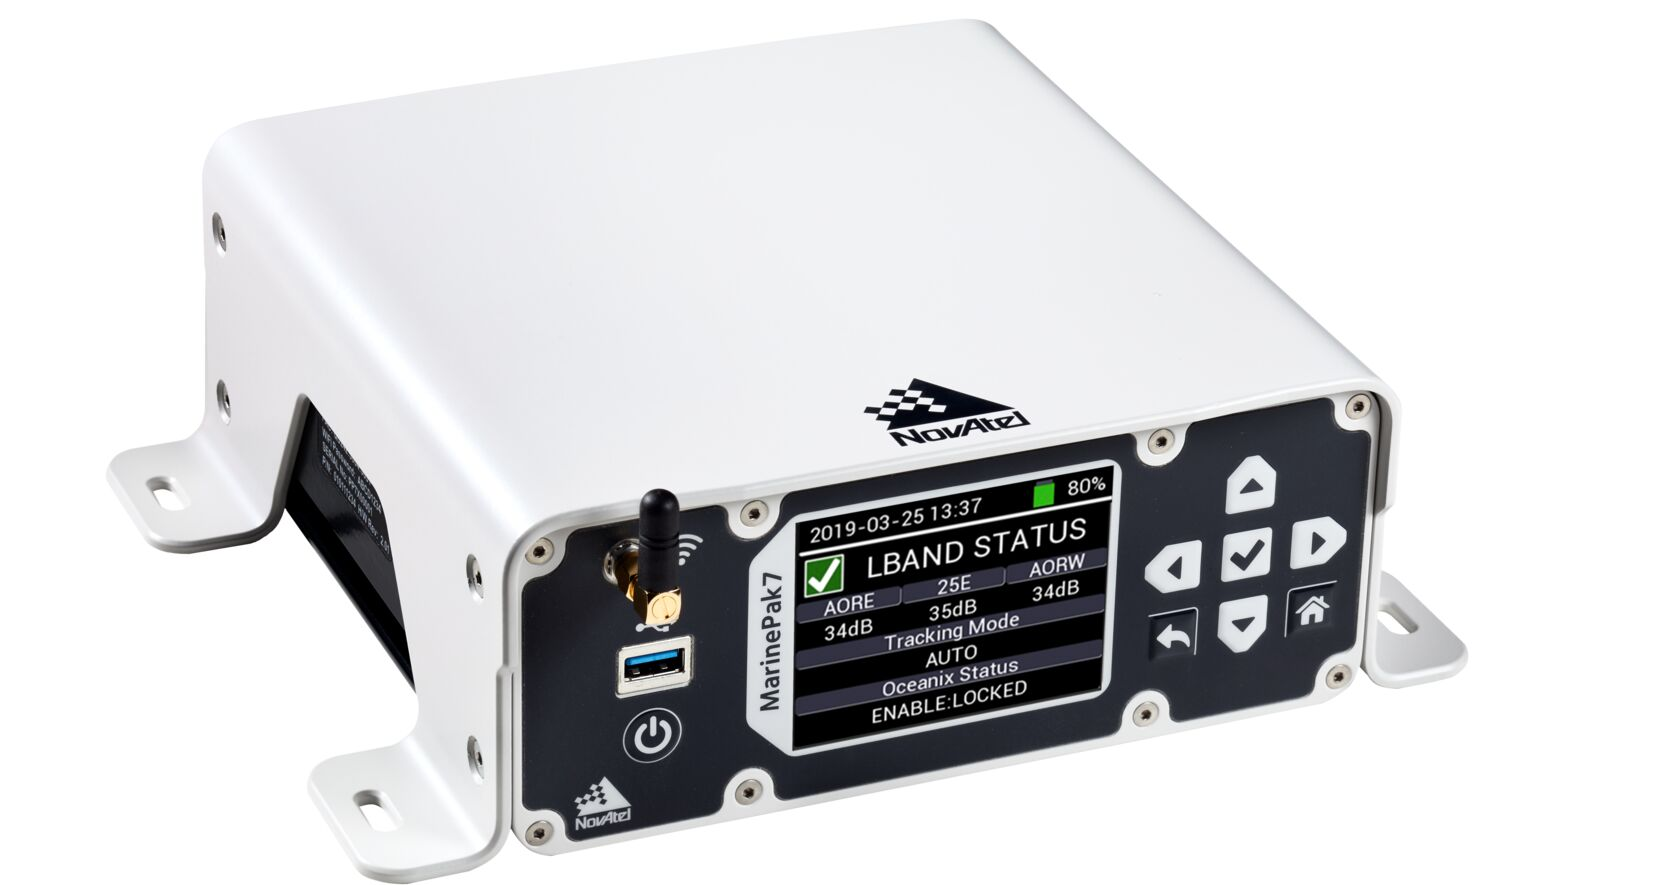 An image of the MarinePak7 marine-certified GNSS receiver on a white background.